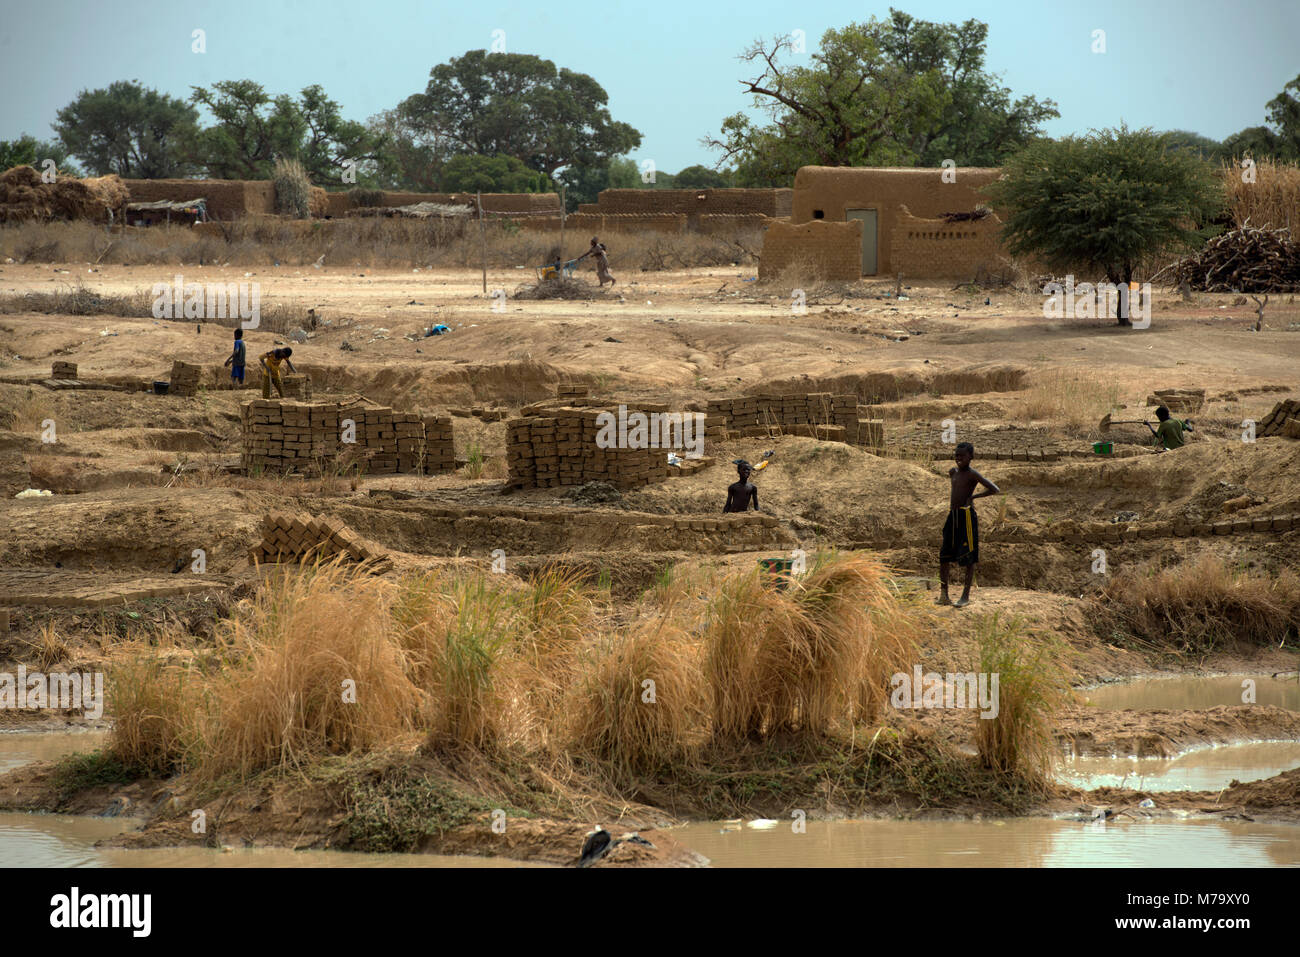 Young boys making mud bricks in a small, rural village. Mopti Region, Mali, West Africa. - Stock Image